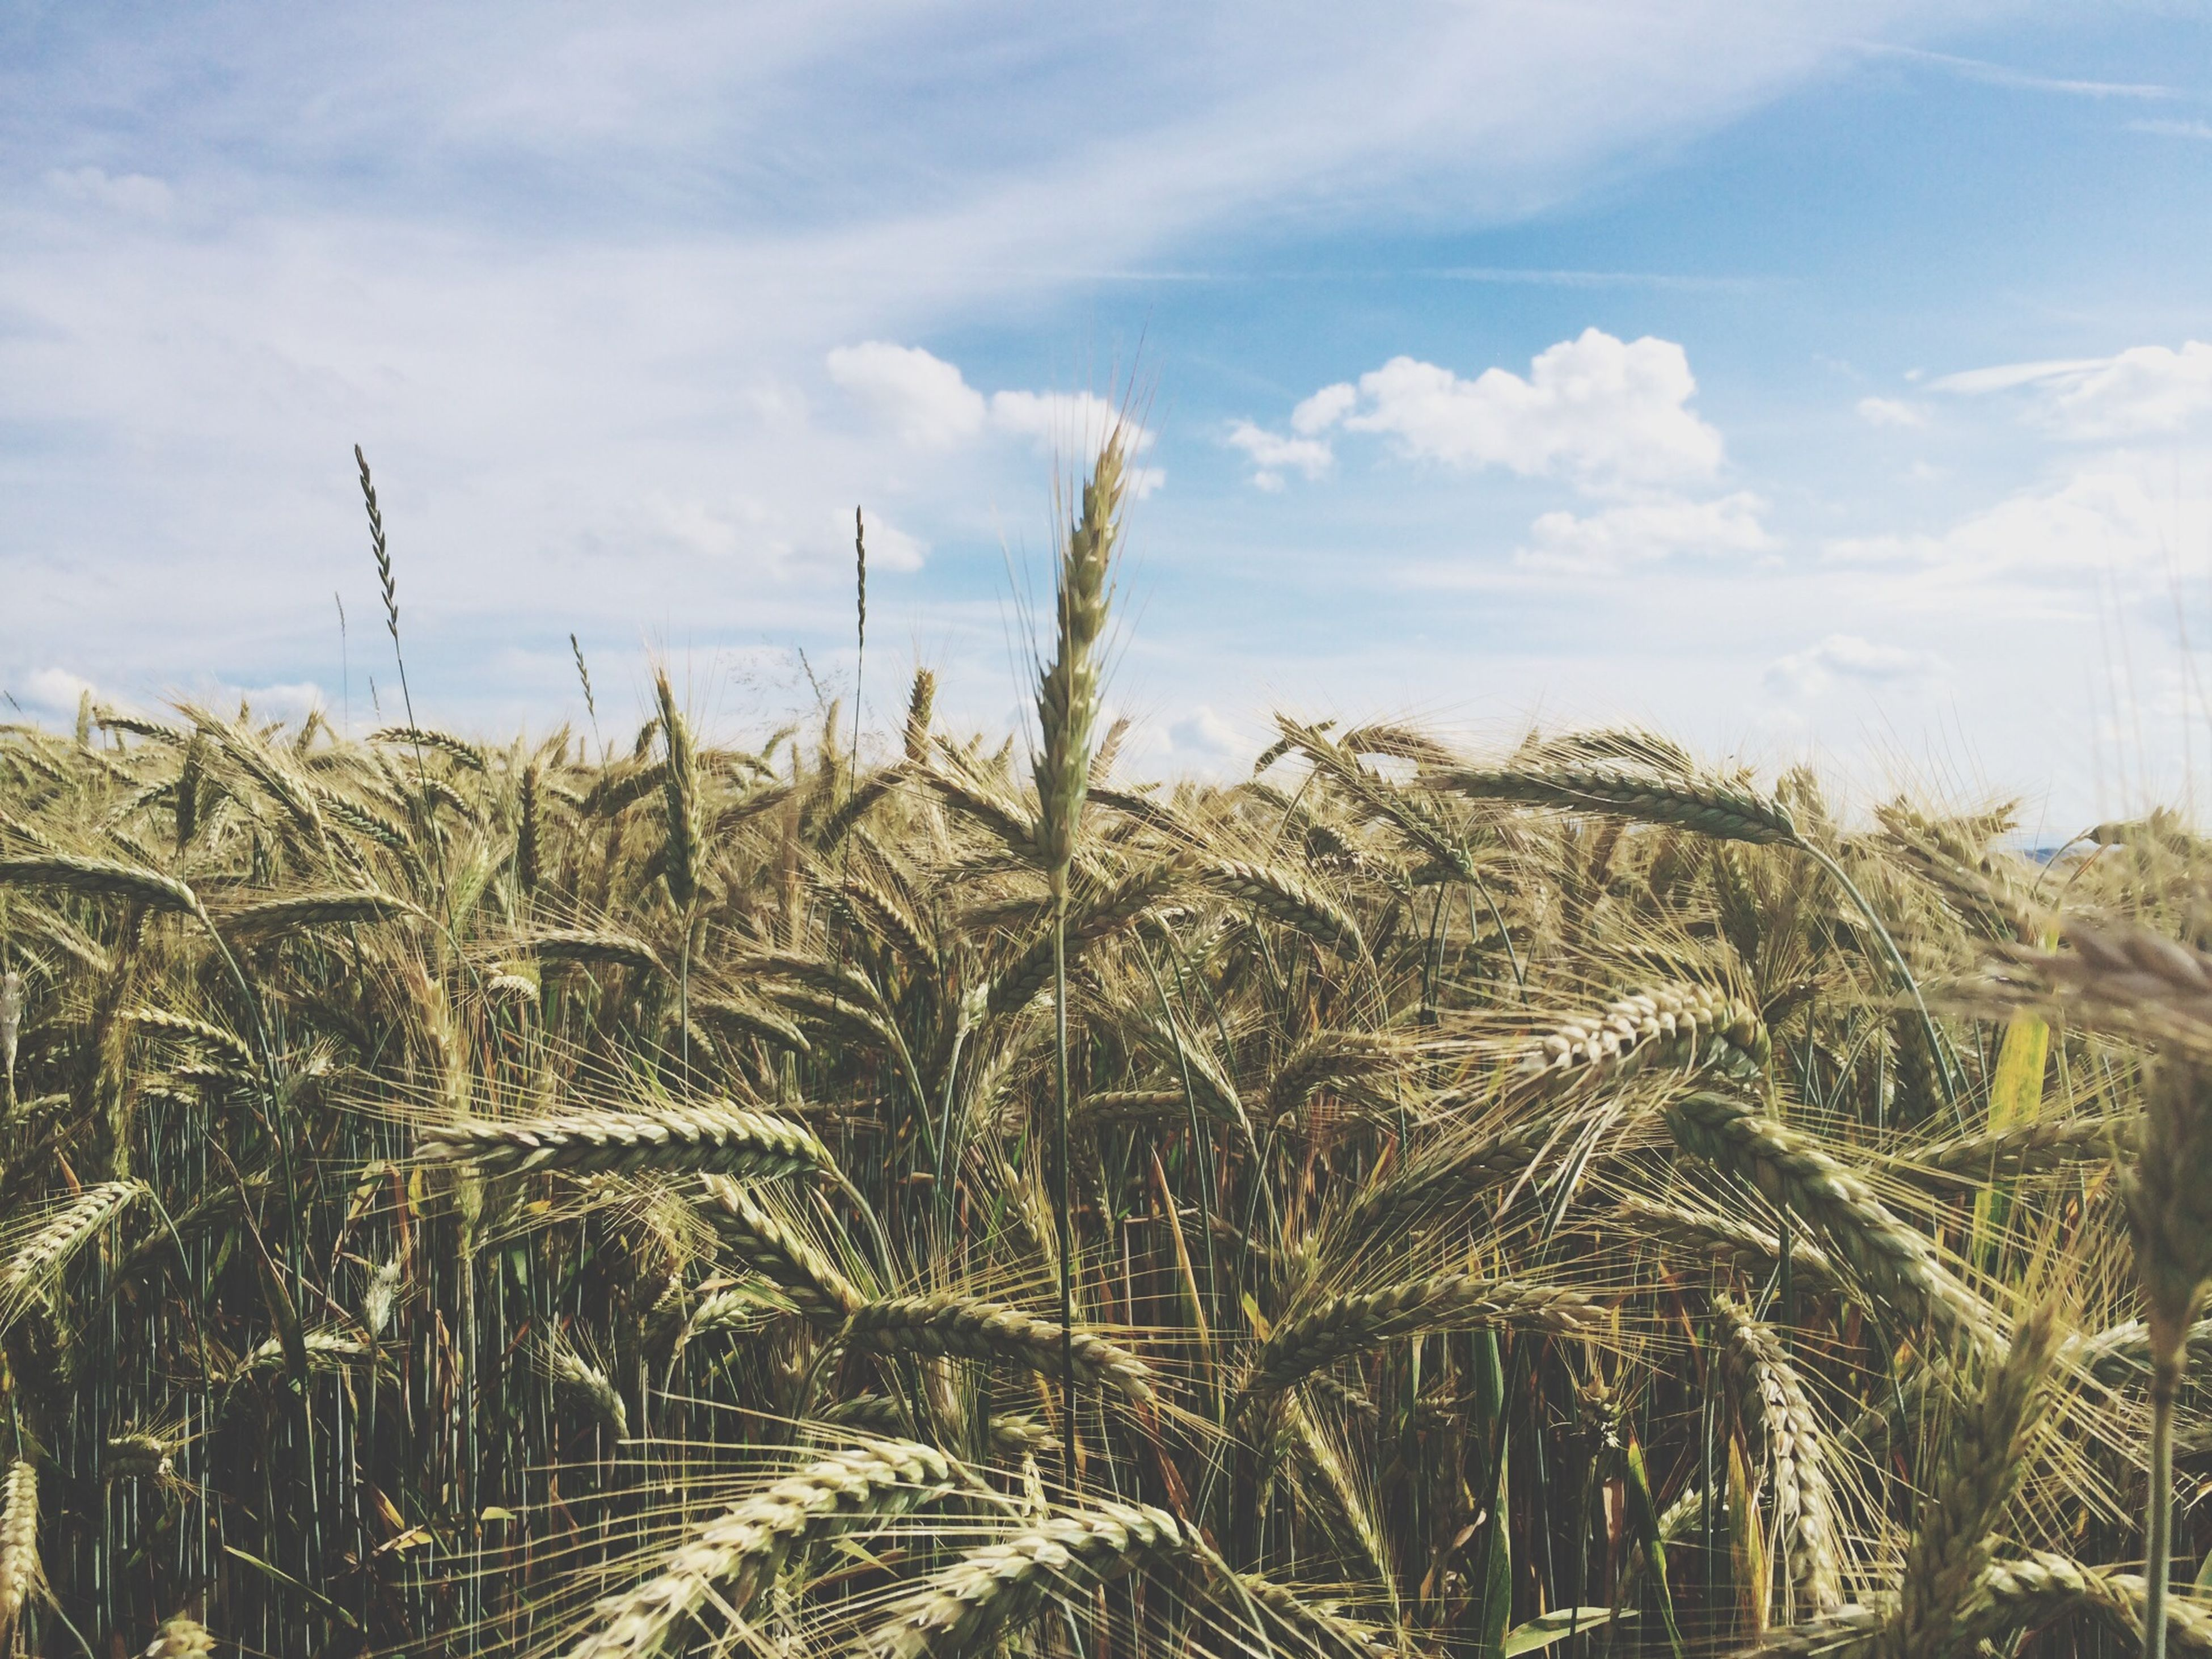 growth, sky, agriculture, field, rural scene, plant, crop, nature, farm, tranquility, beauty in nature, cereal plant, landscape, tranquil scene, growing, cloud - sky, wheat, day, scenics, cloud